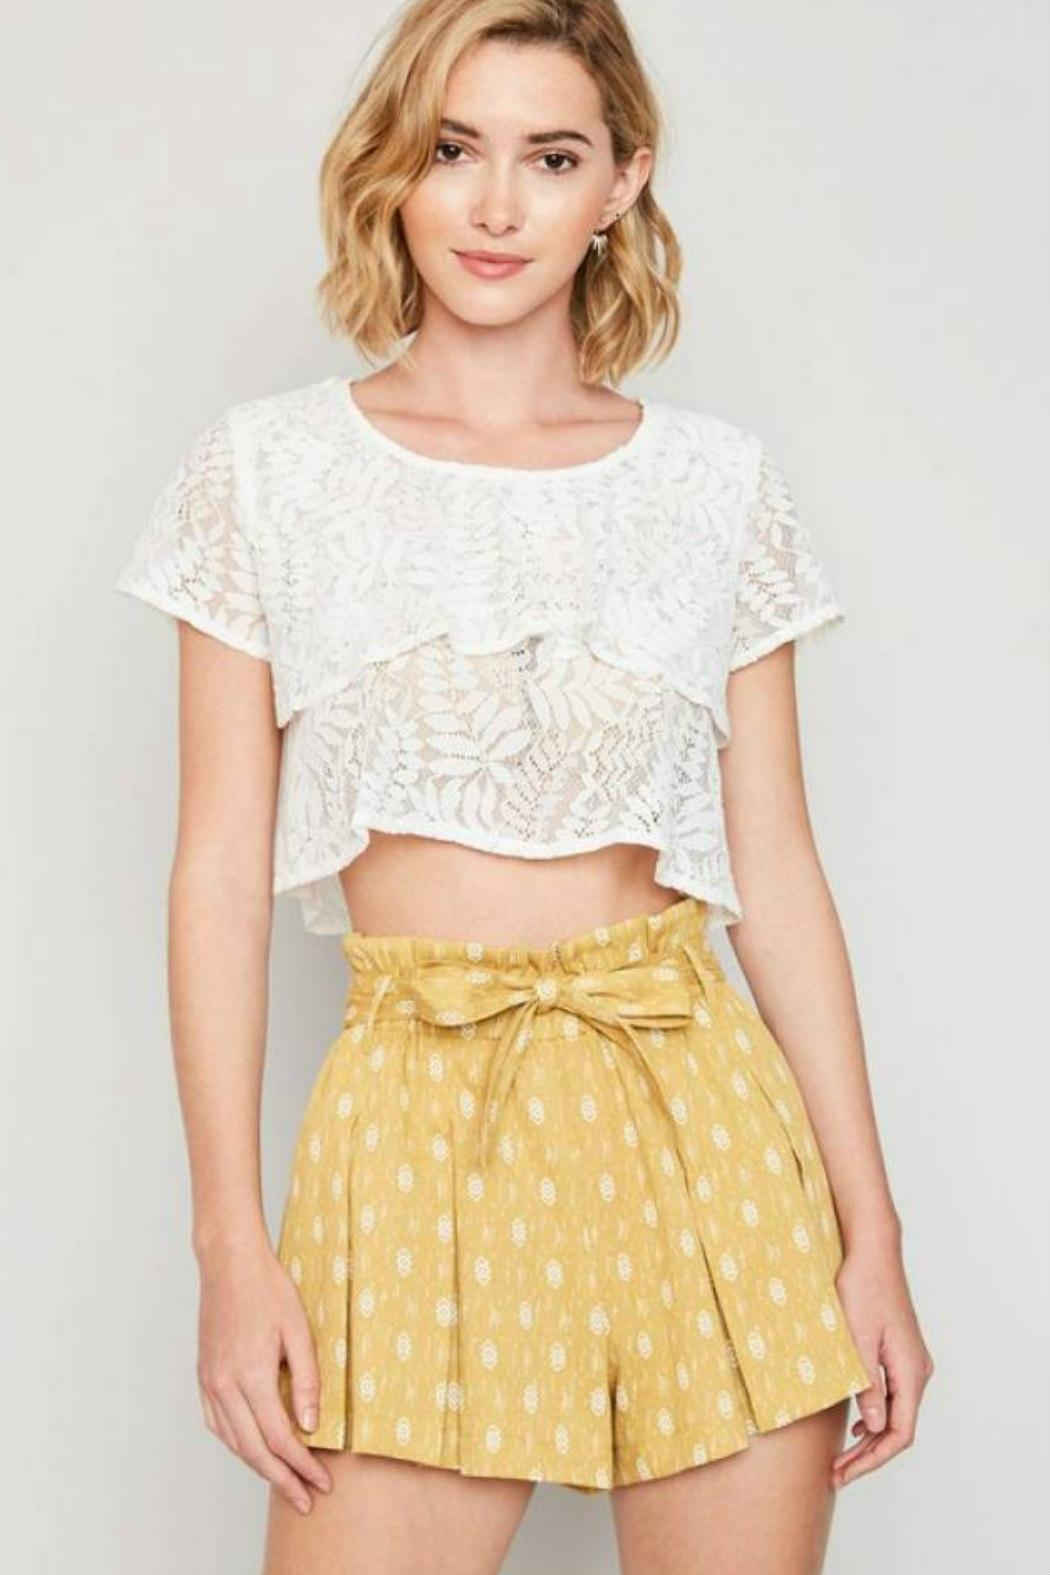 Hayden Los Angeles High-Waist Belted Shorts - Main Image